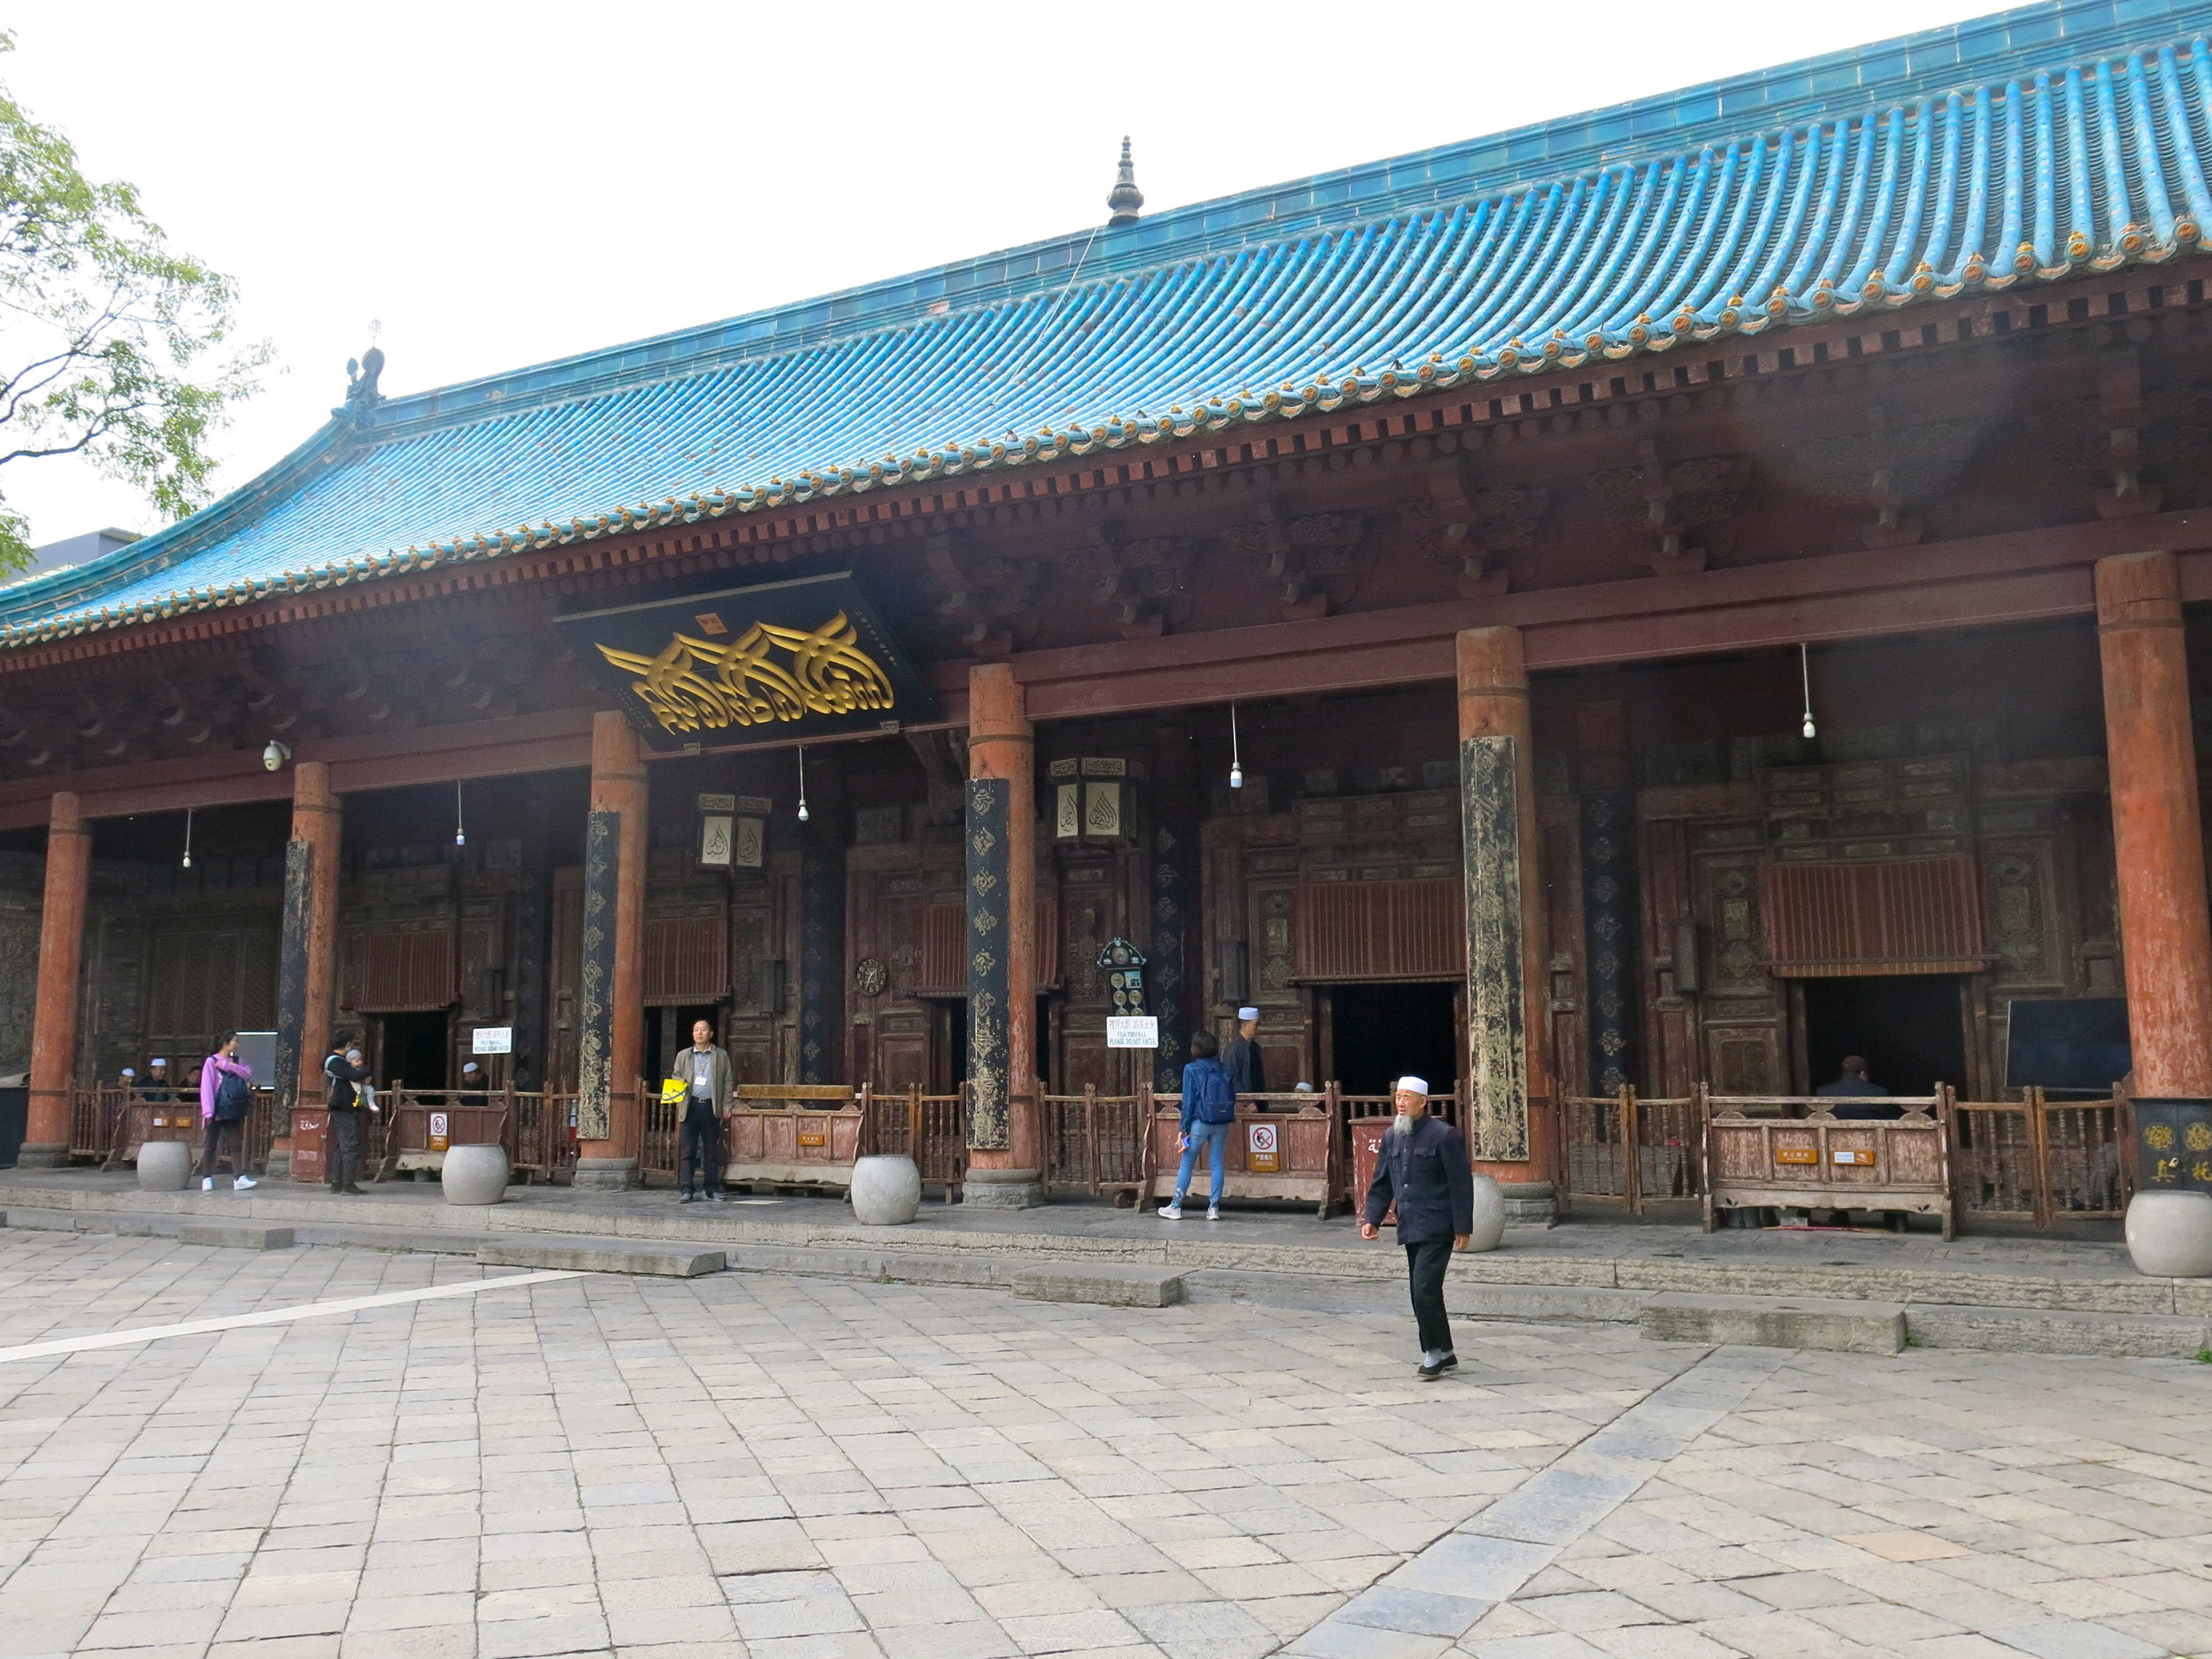 Main prayer-hall of the Great Mosque in Xi'an